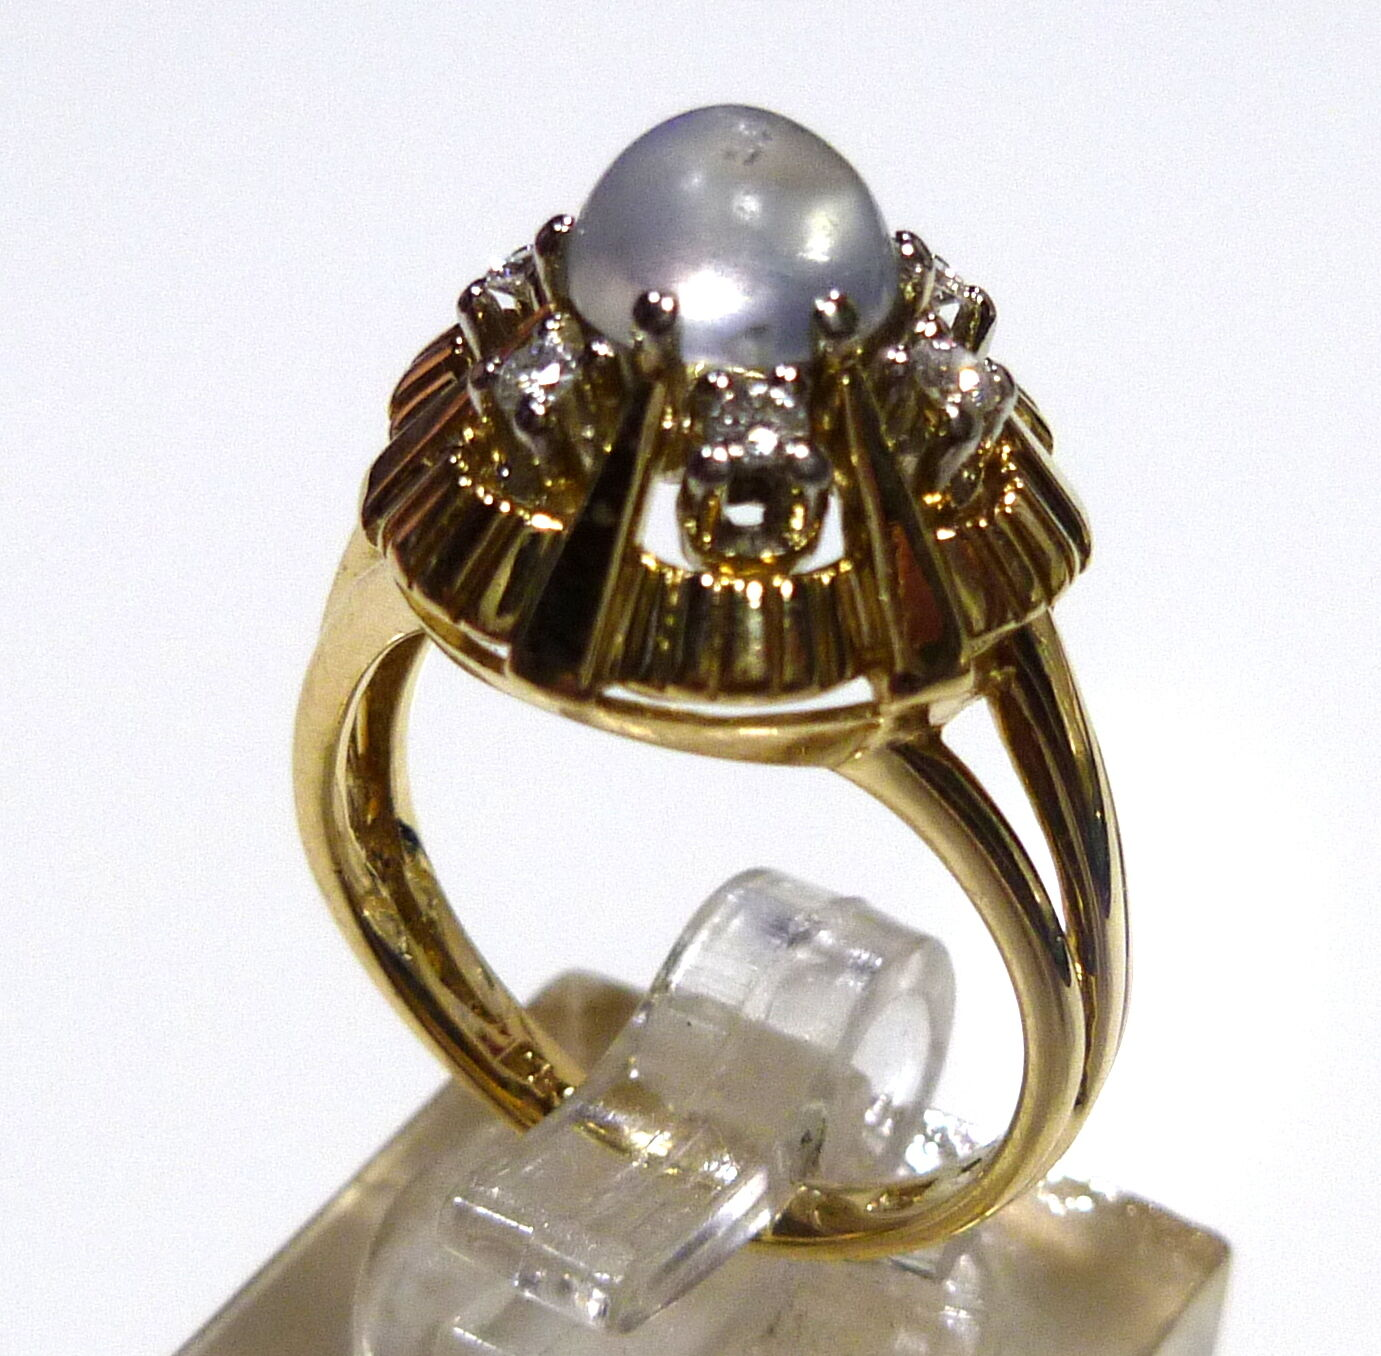 Moonstone Rings in 585 14k 53 (0 21 32in Ø) Yellow gold 6 Diamonds ca. 0.14 ct